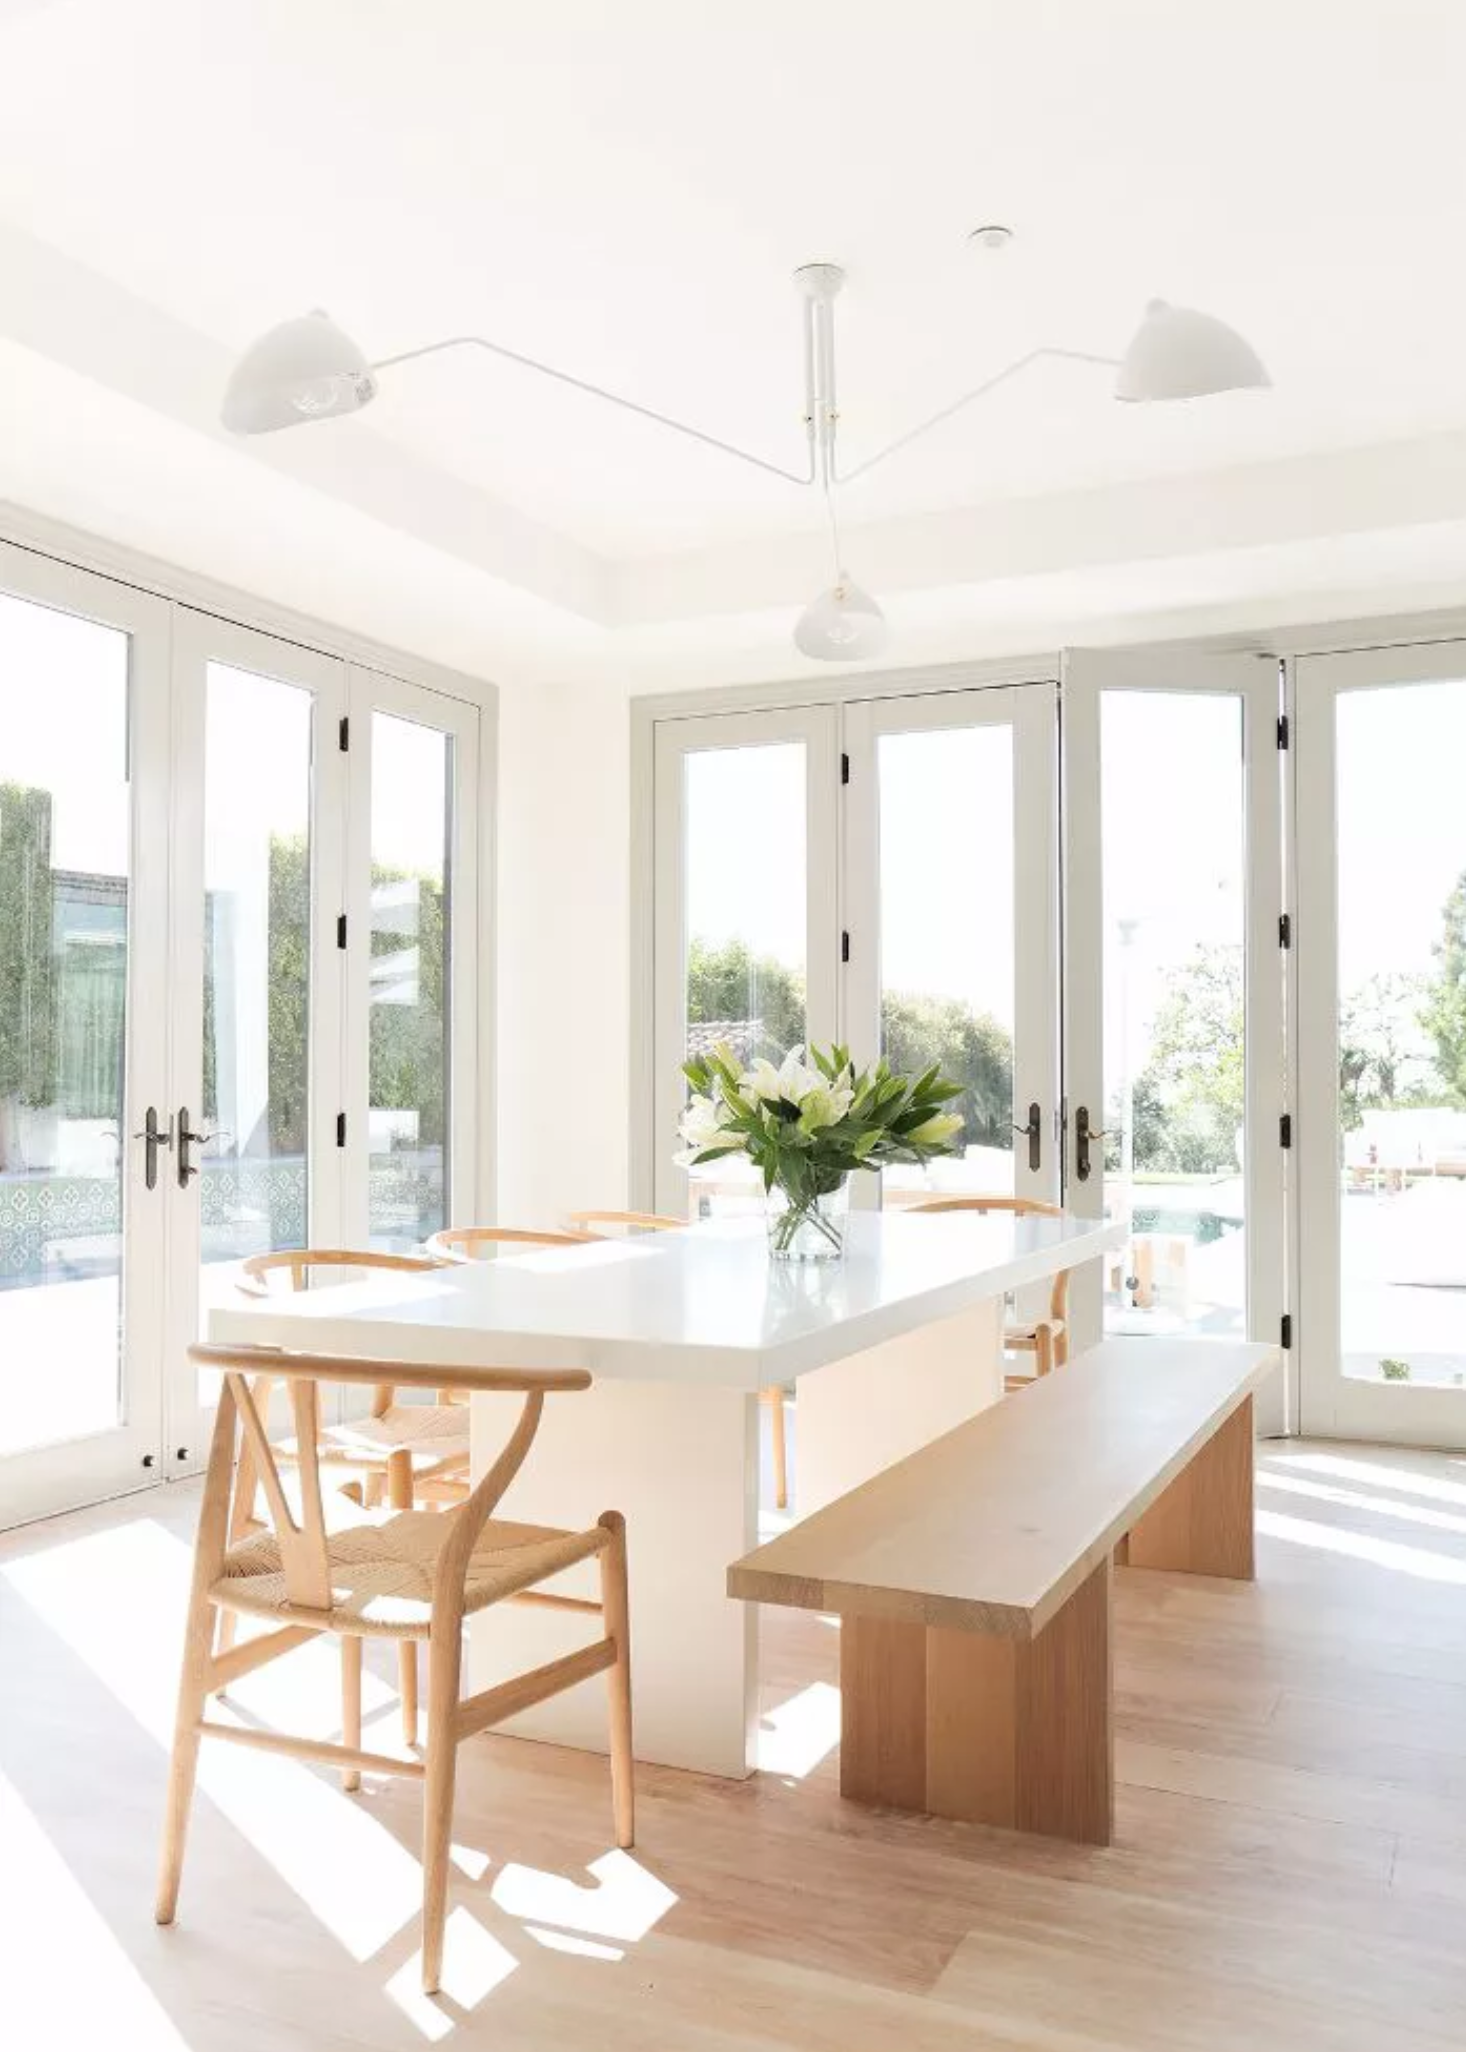 Best Warm White Paint Colors - Farrow and Ball - IMAGE: by Tessa Neustadt, Design: Alexander Design via MyDomaine feat. paint color 'Ammonite' from Farrow and Ball